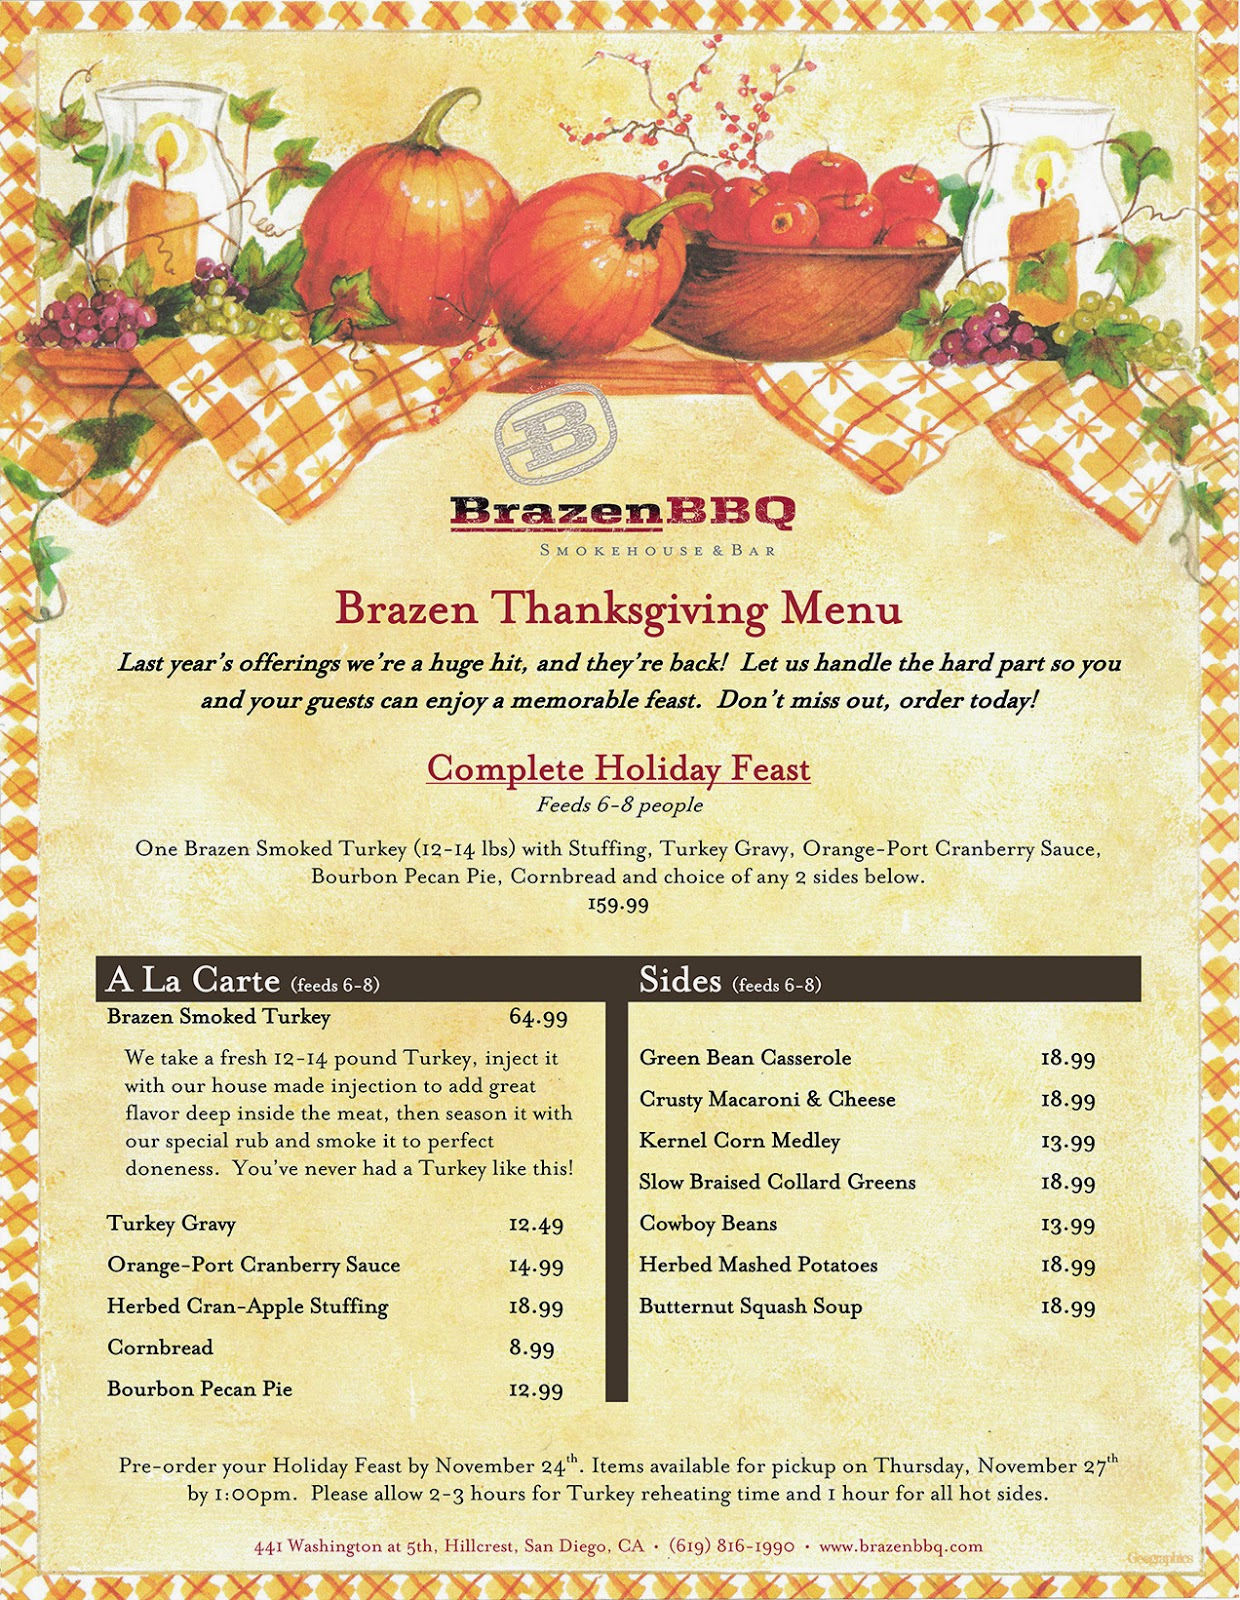 Thanksgiving All Year Long: SanDiegoVille: Treat Yourself To A Relaxing Thanksgiving